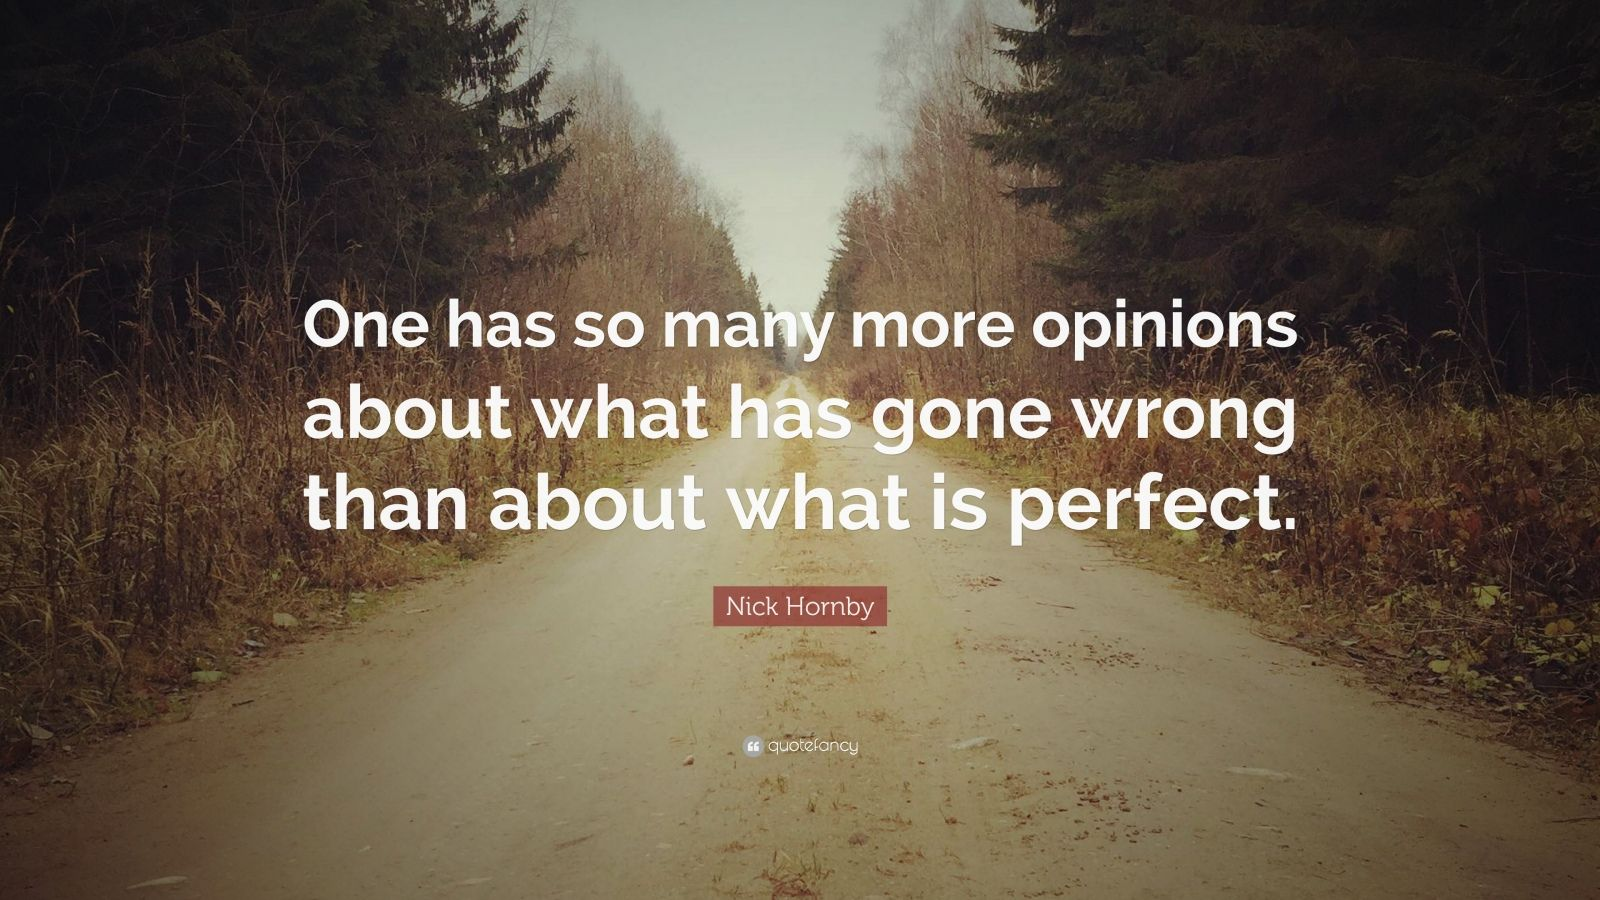 """Nick Hornby Quote: """"One has so many more opinions about what has gone wrong than about what is perfect."""""""